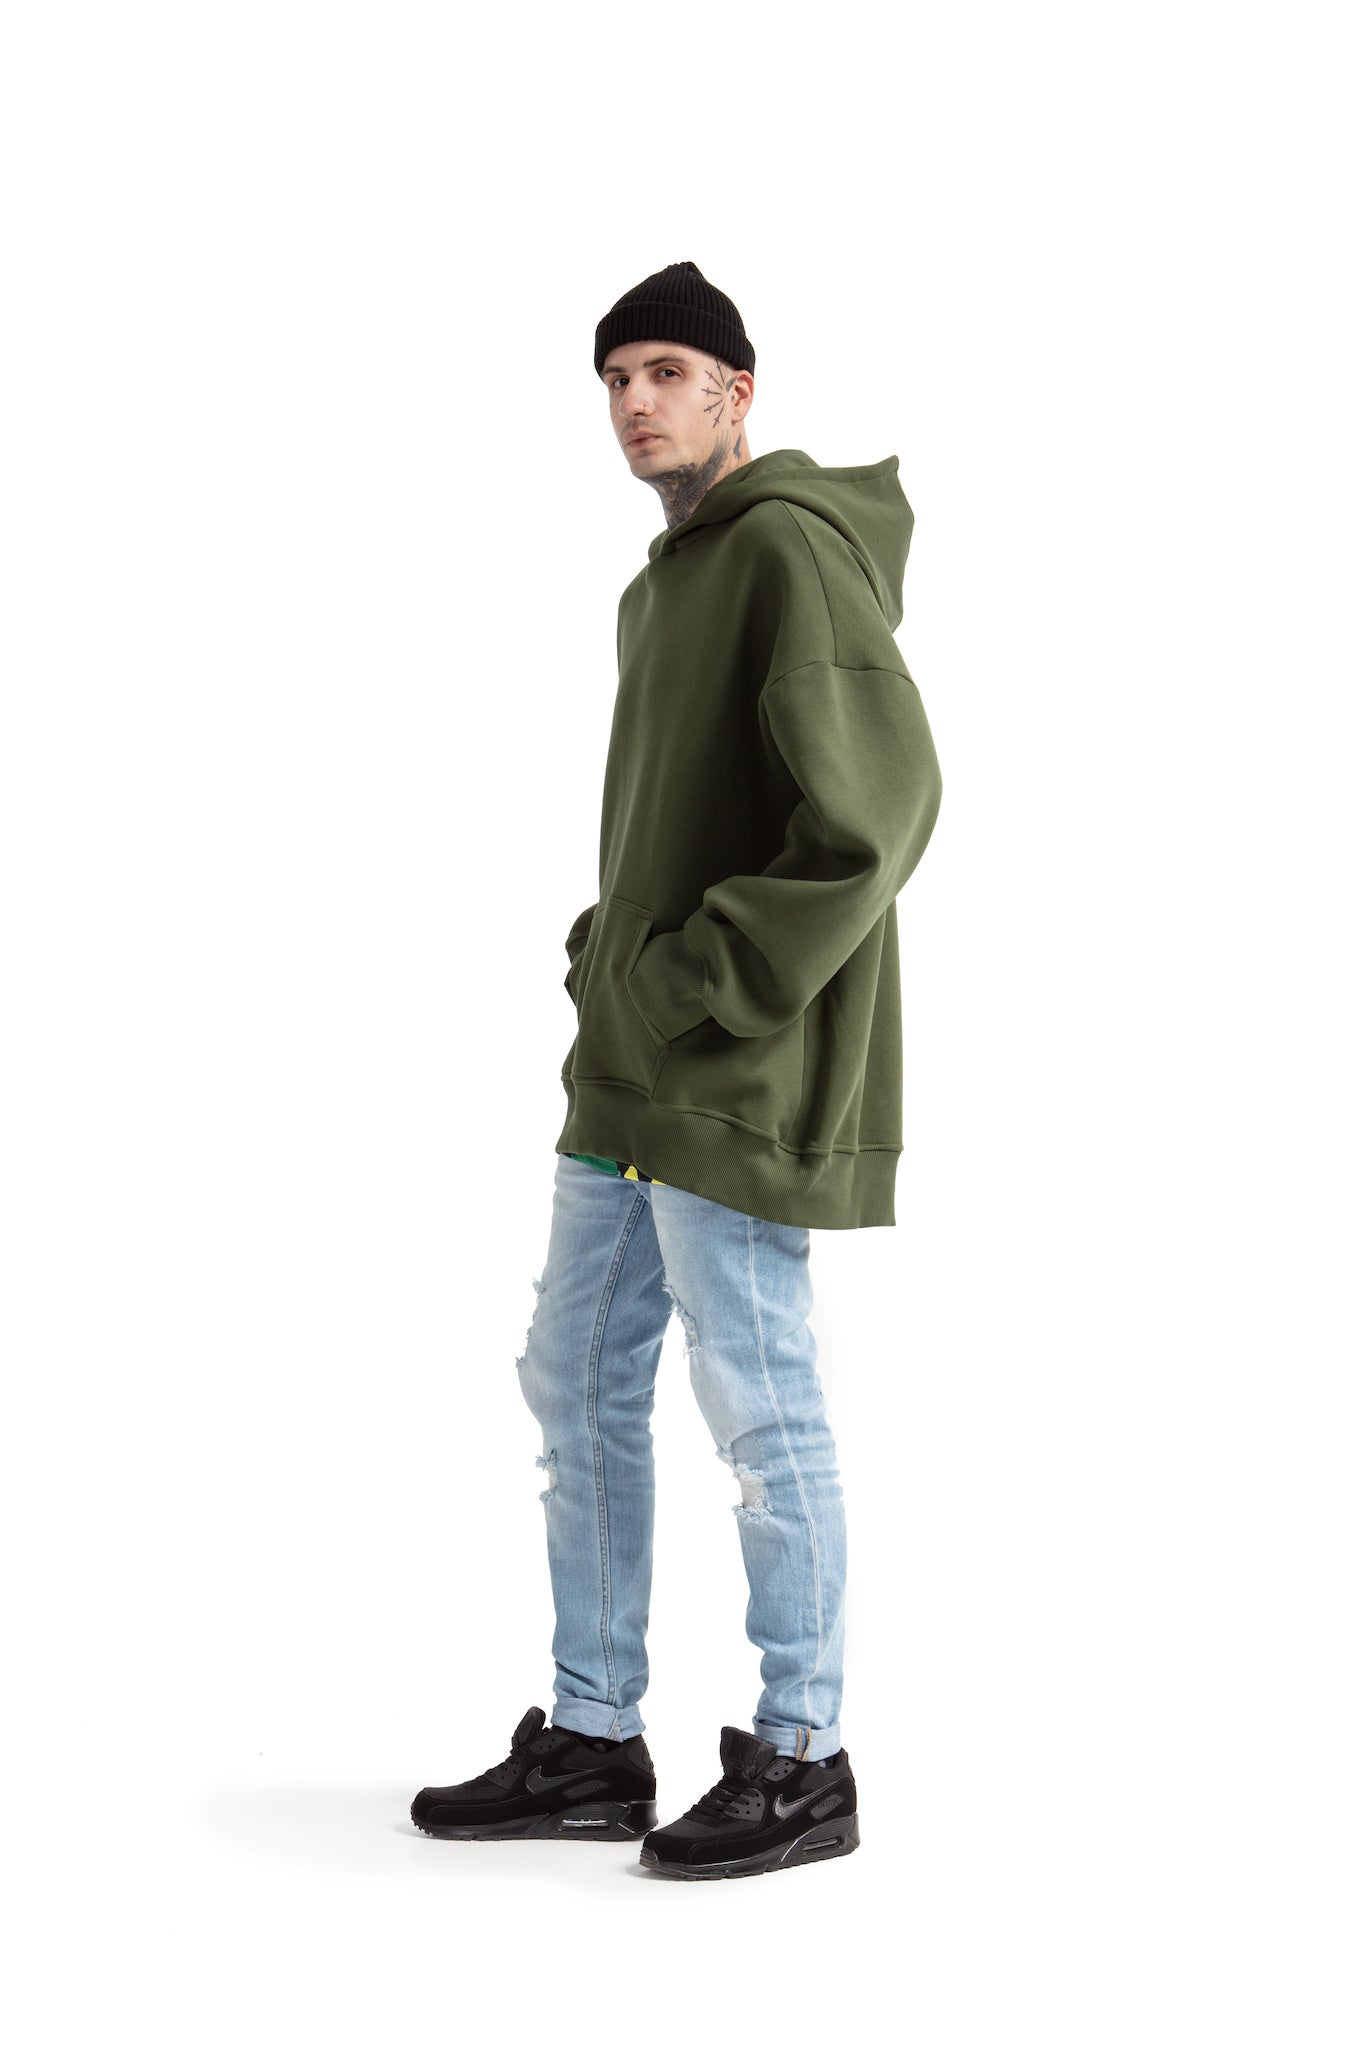 Super Oversized [Khaki] Sweatshirts